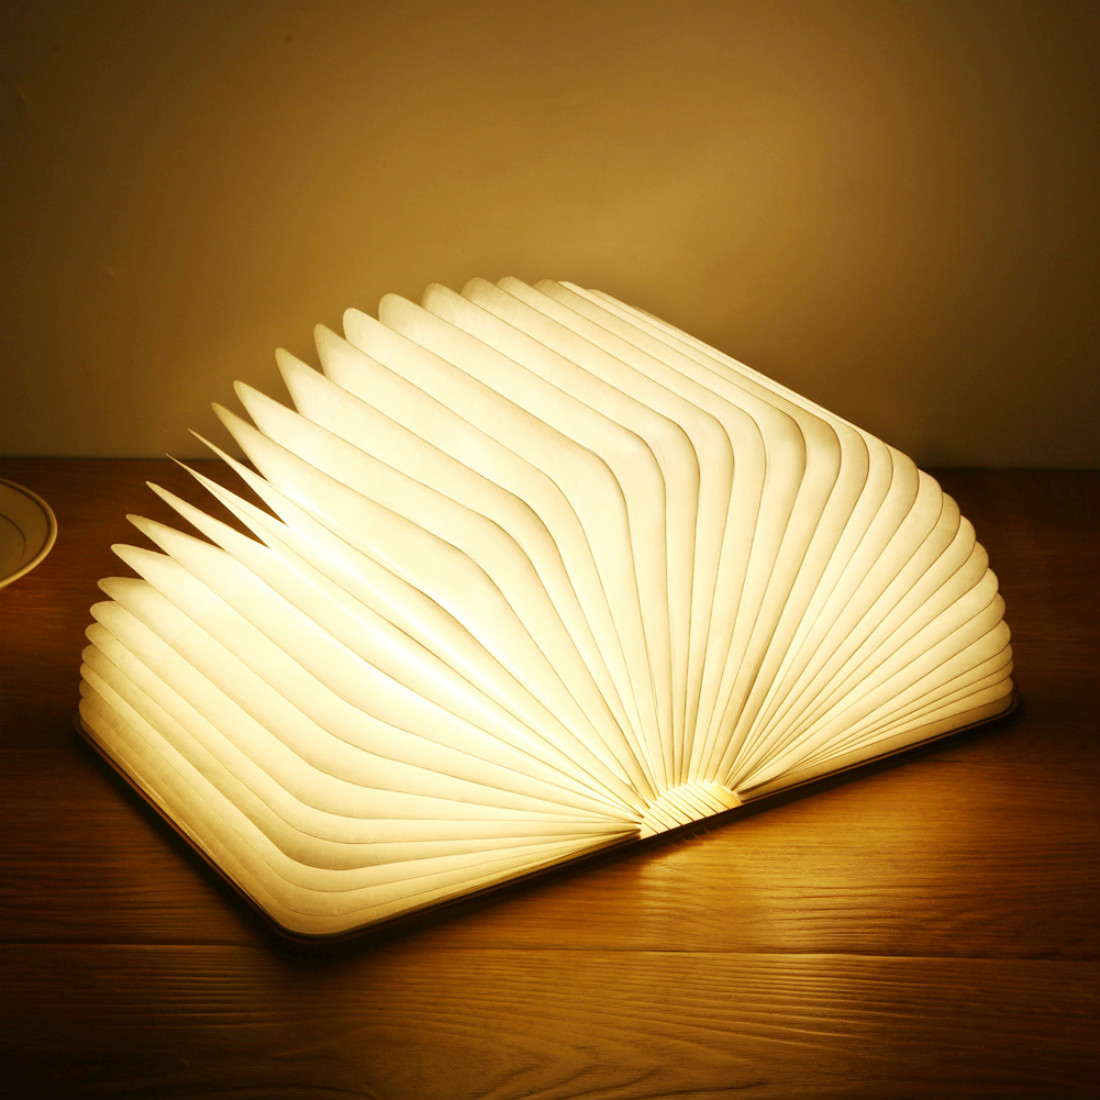 Wooden Book Lamp Portable USB Rechargeable LED Magnetic7color Dimmable Foldable Night Light Desk Lamp Home Decor